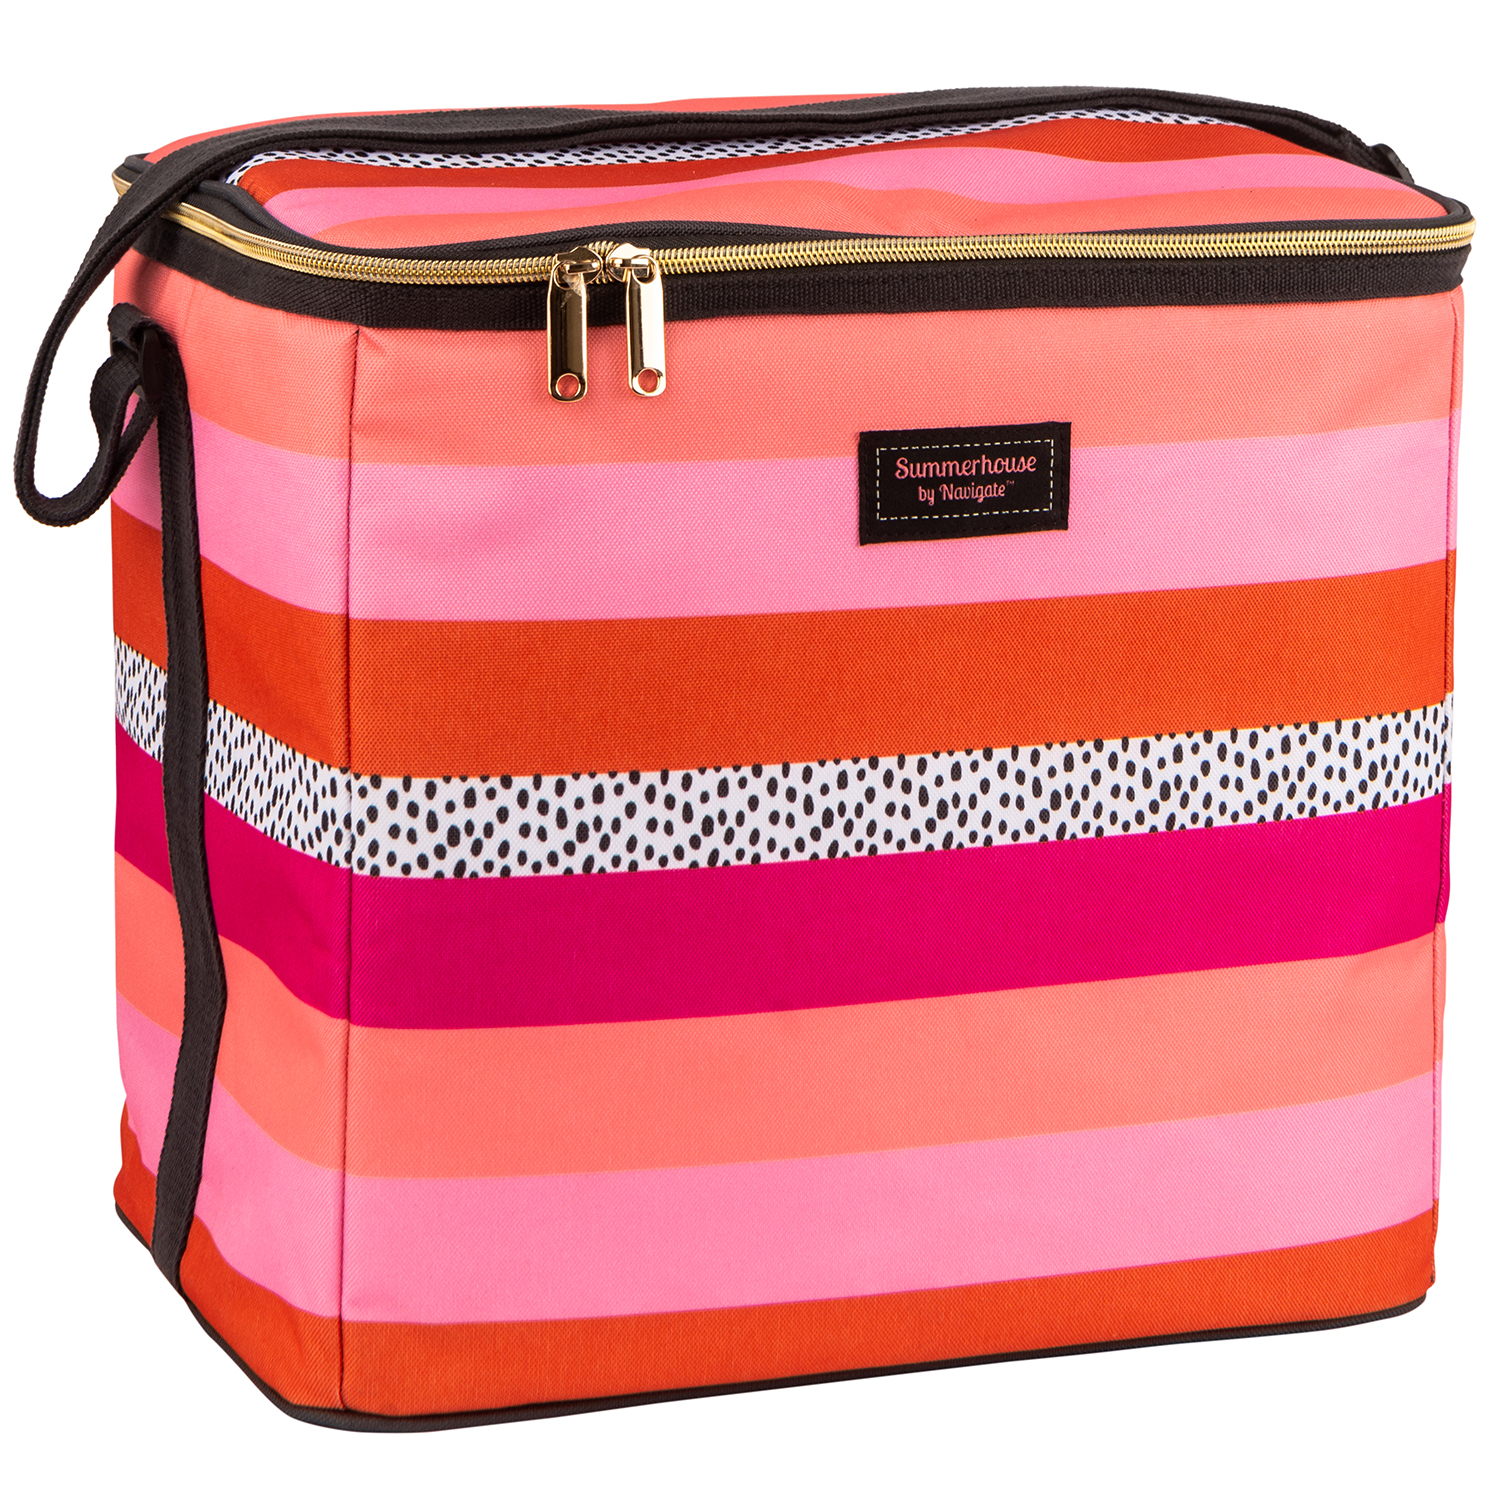 Navigate – Summerhouse 'Tribal Fusion' Stripe 20L Family Insulated Cool Bag